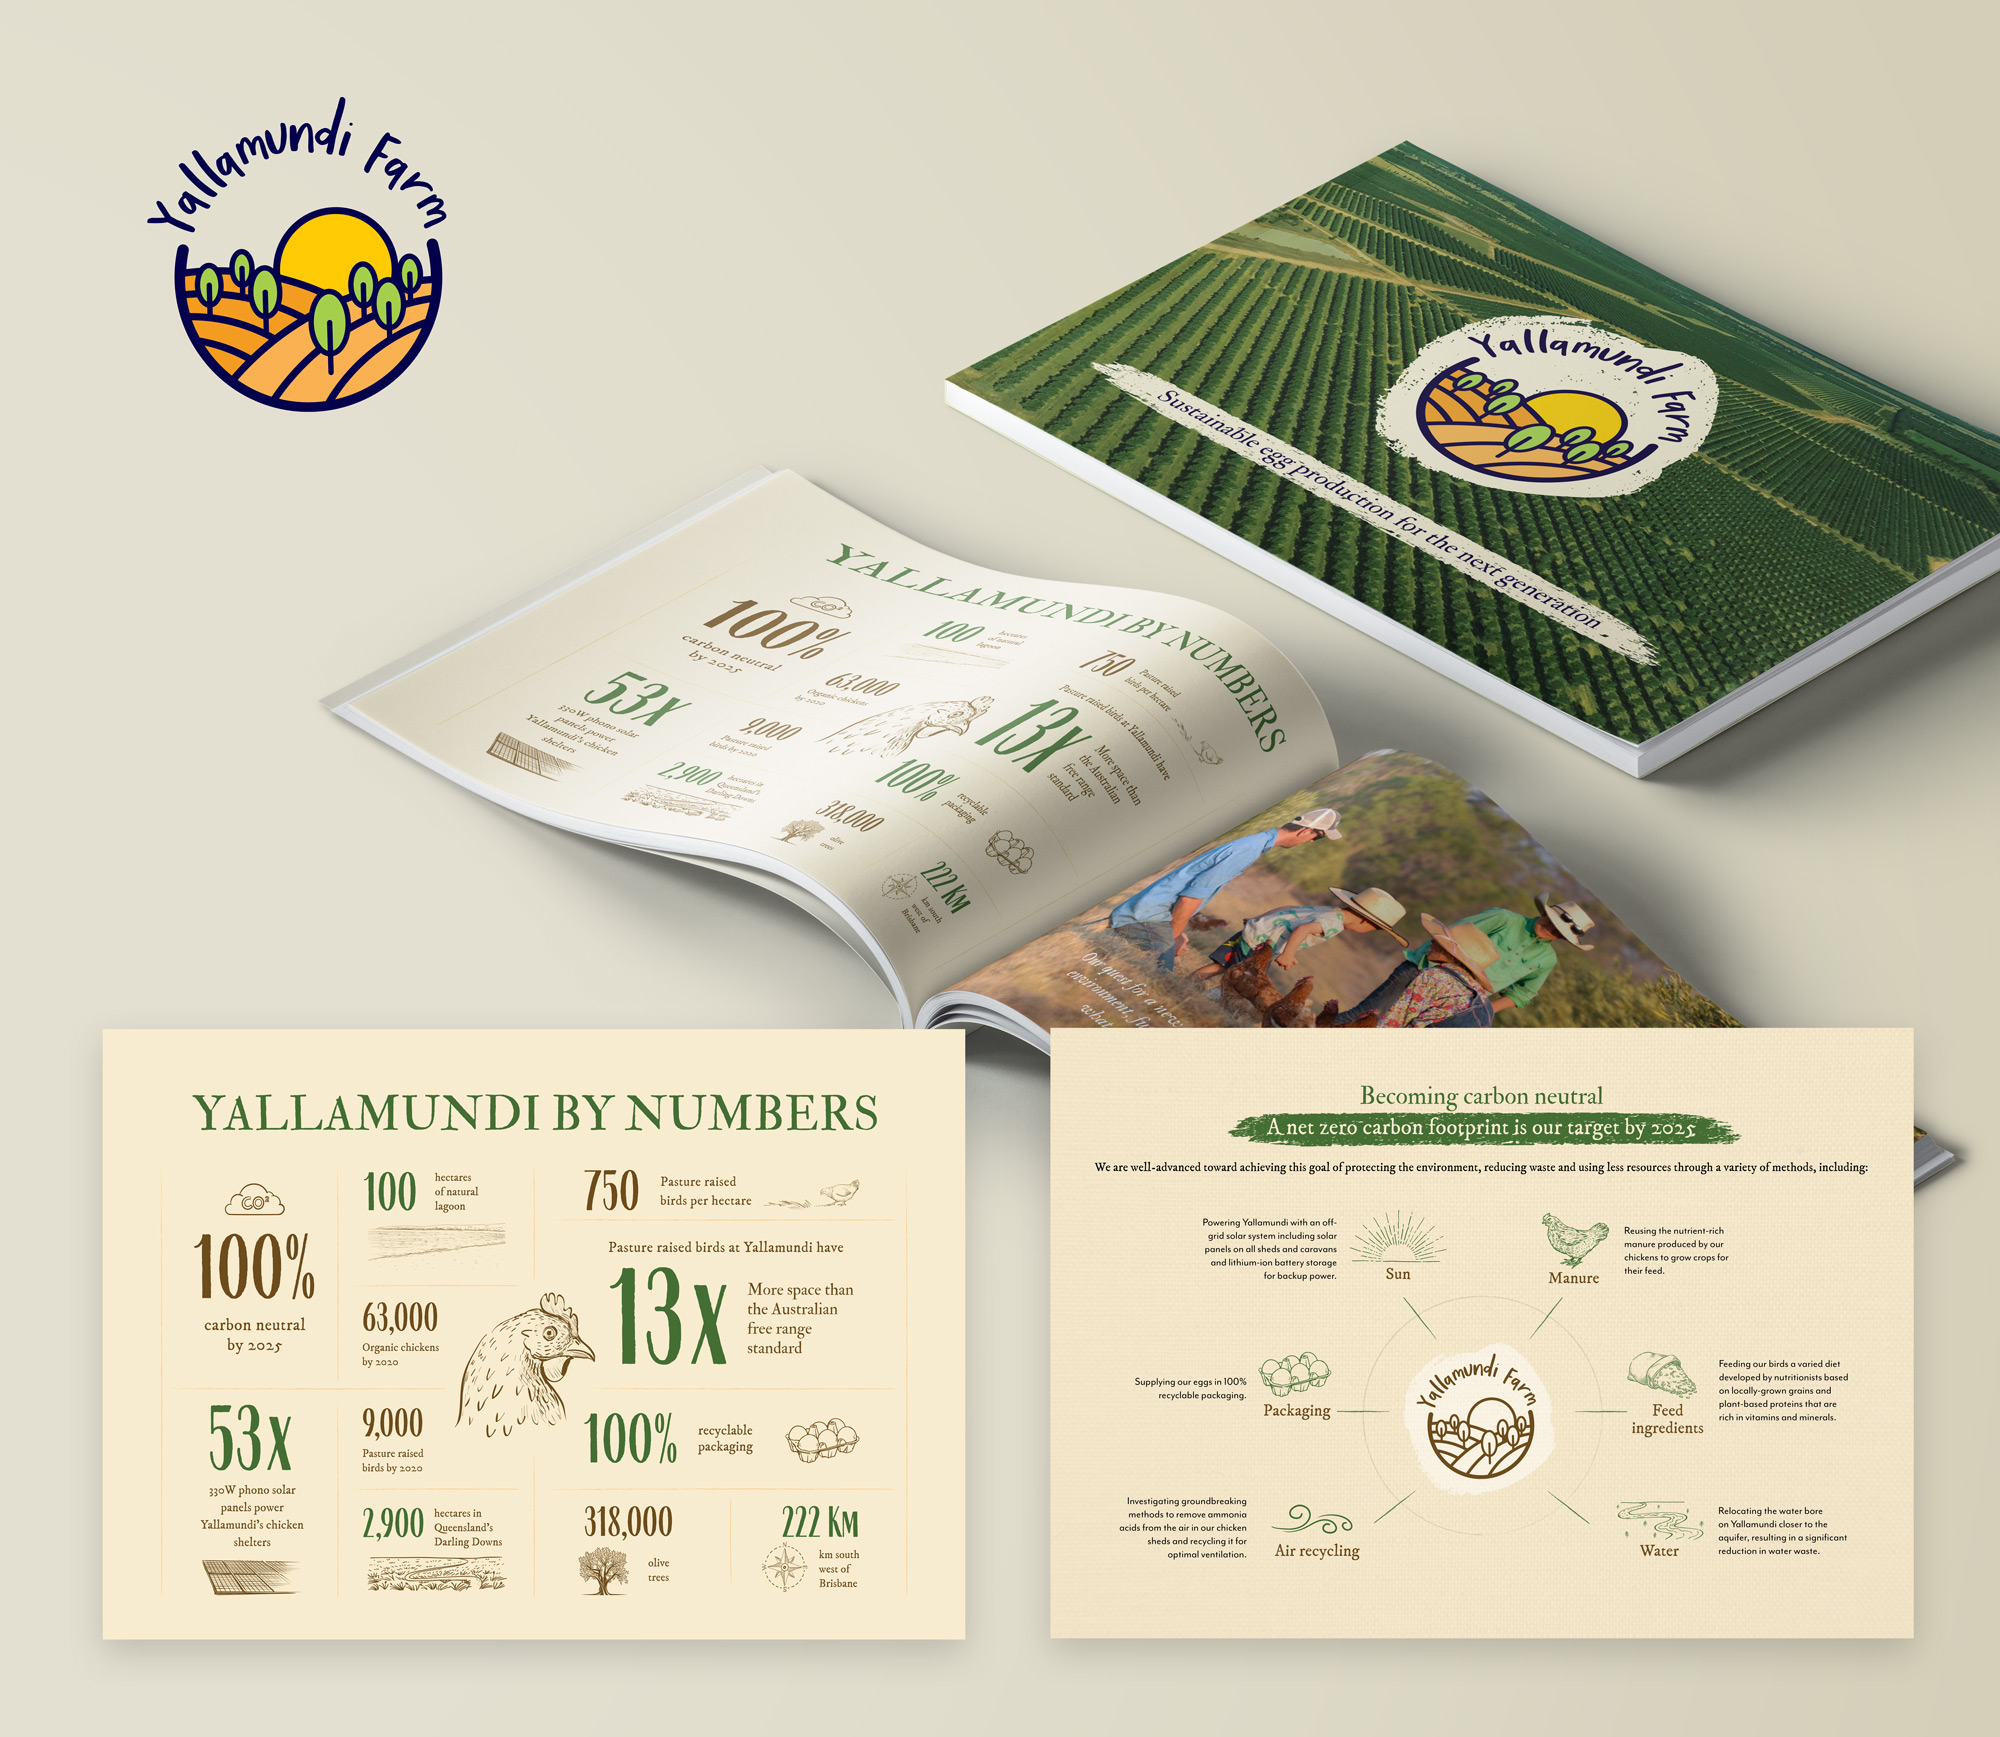 Brand strategy and packaging design project for Yallamundi Farms by Sketch Corp.